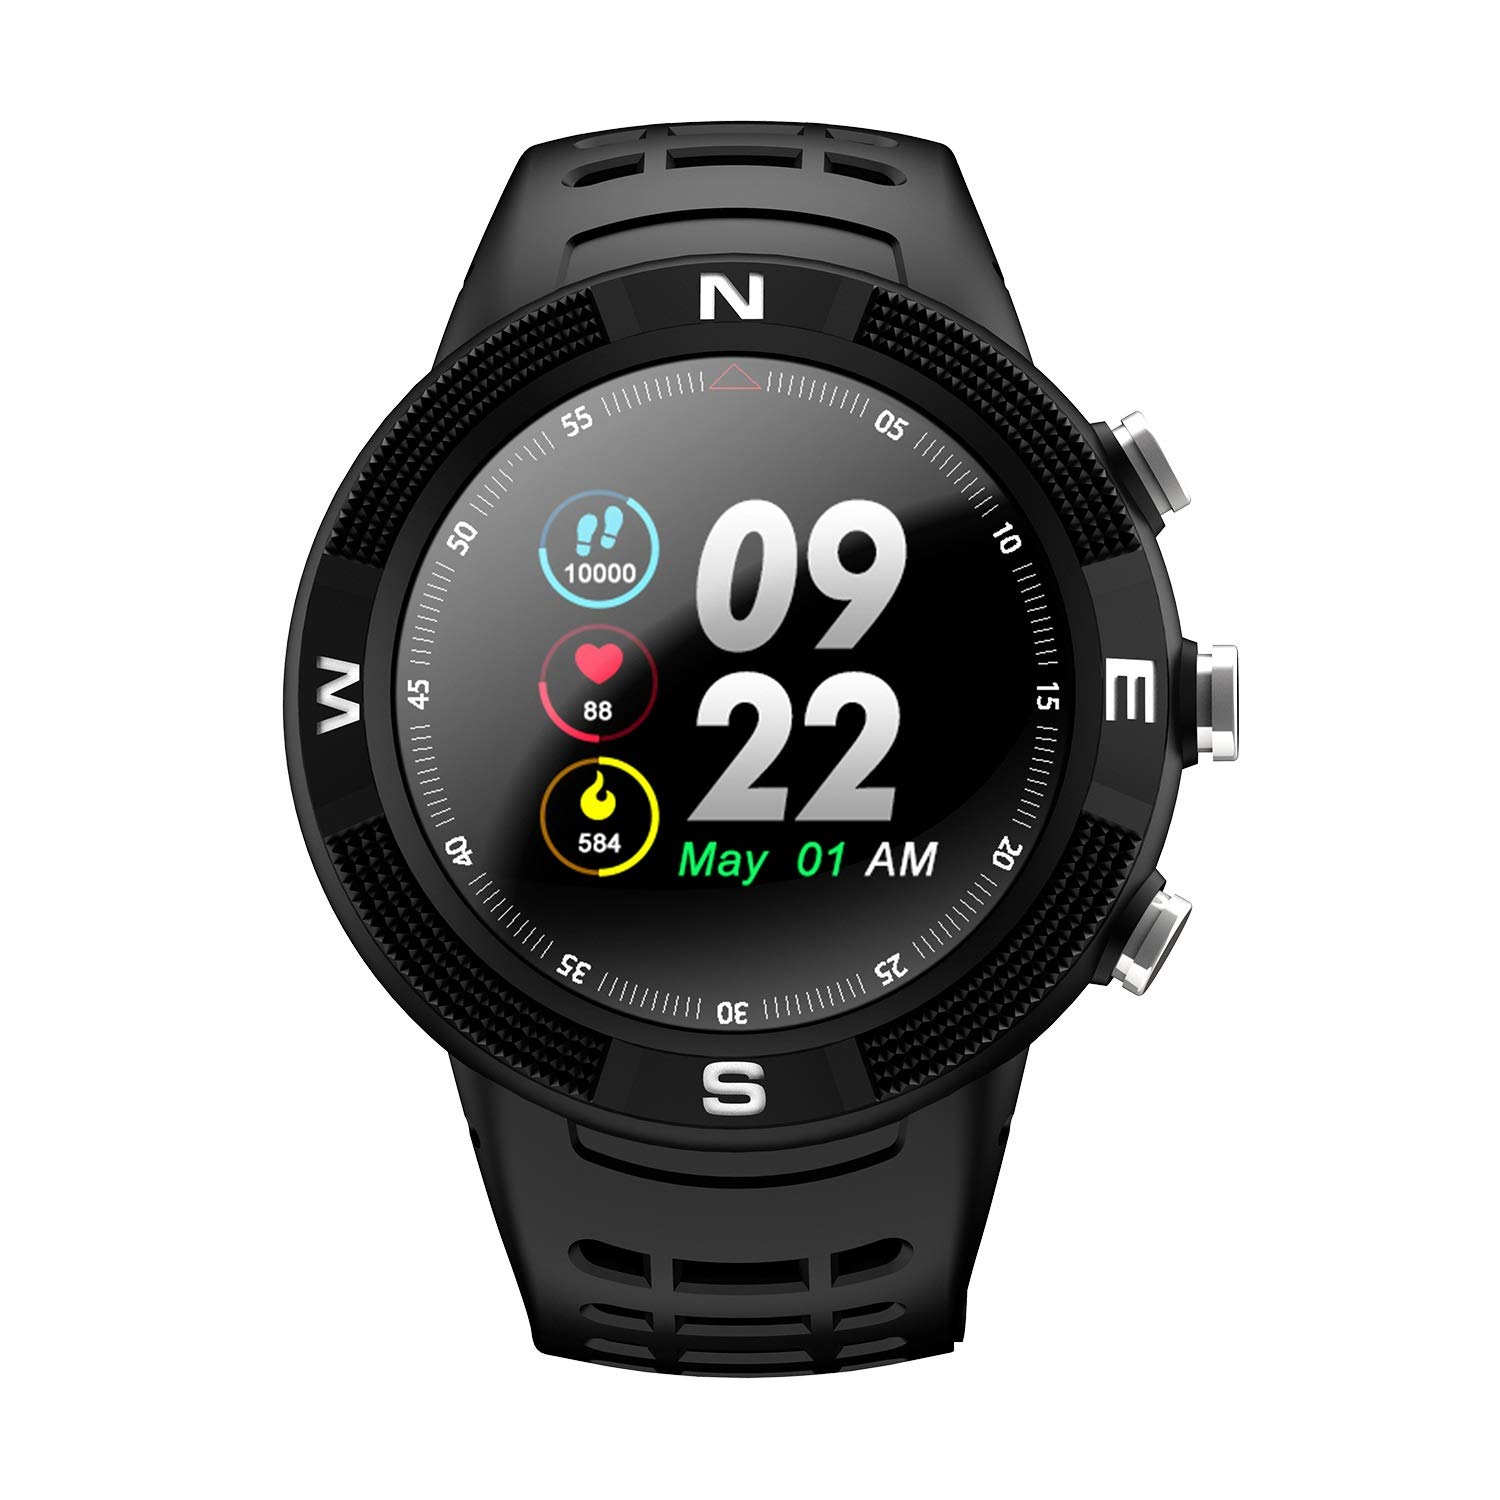 Smart Watch - Waterproof Bluetooth Stylish Touch Screen Smart Watch, GPS Positioning, Outdoor Sports Smart Watch, Compatible with Android and iOS Platforms (Color : Black) by LiChenYao